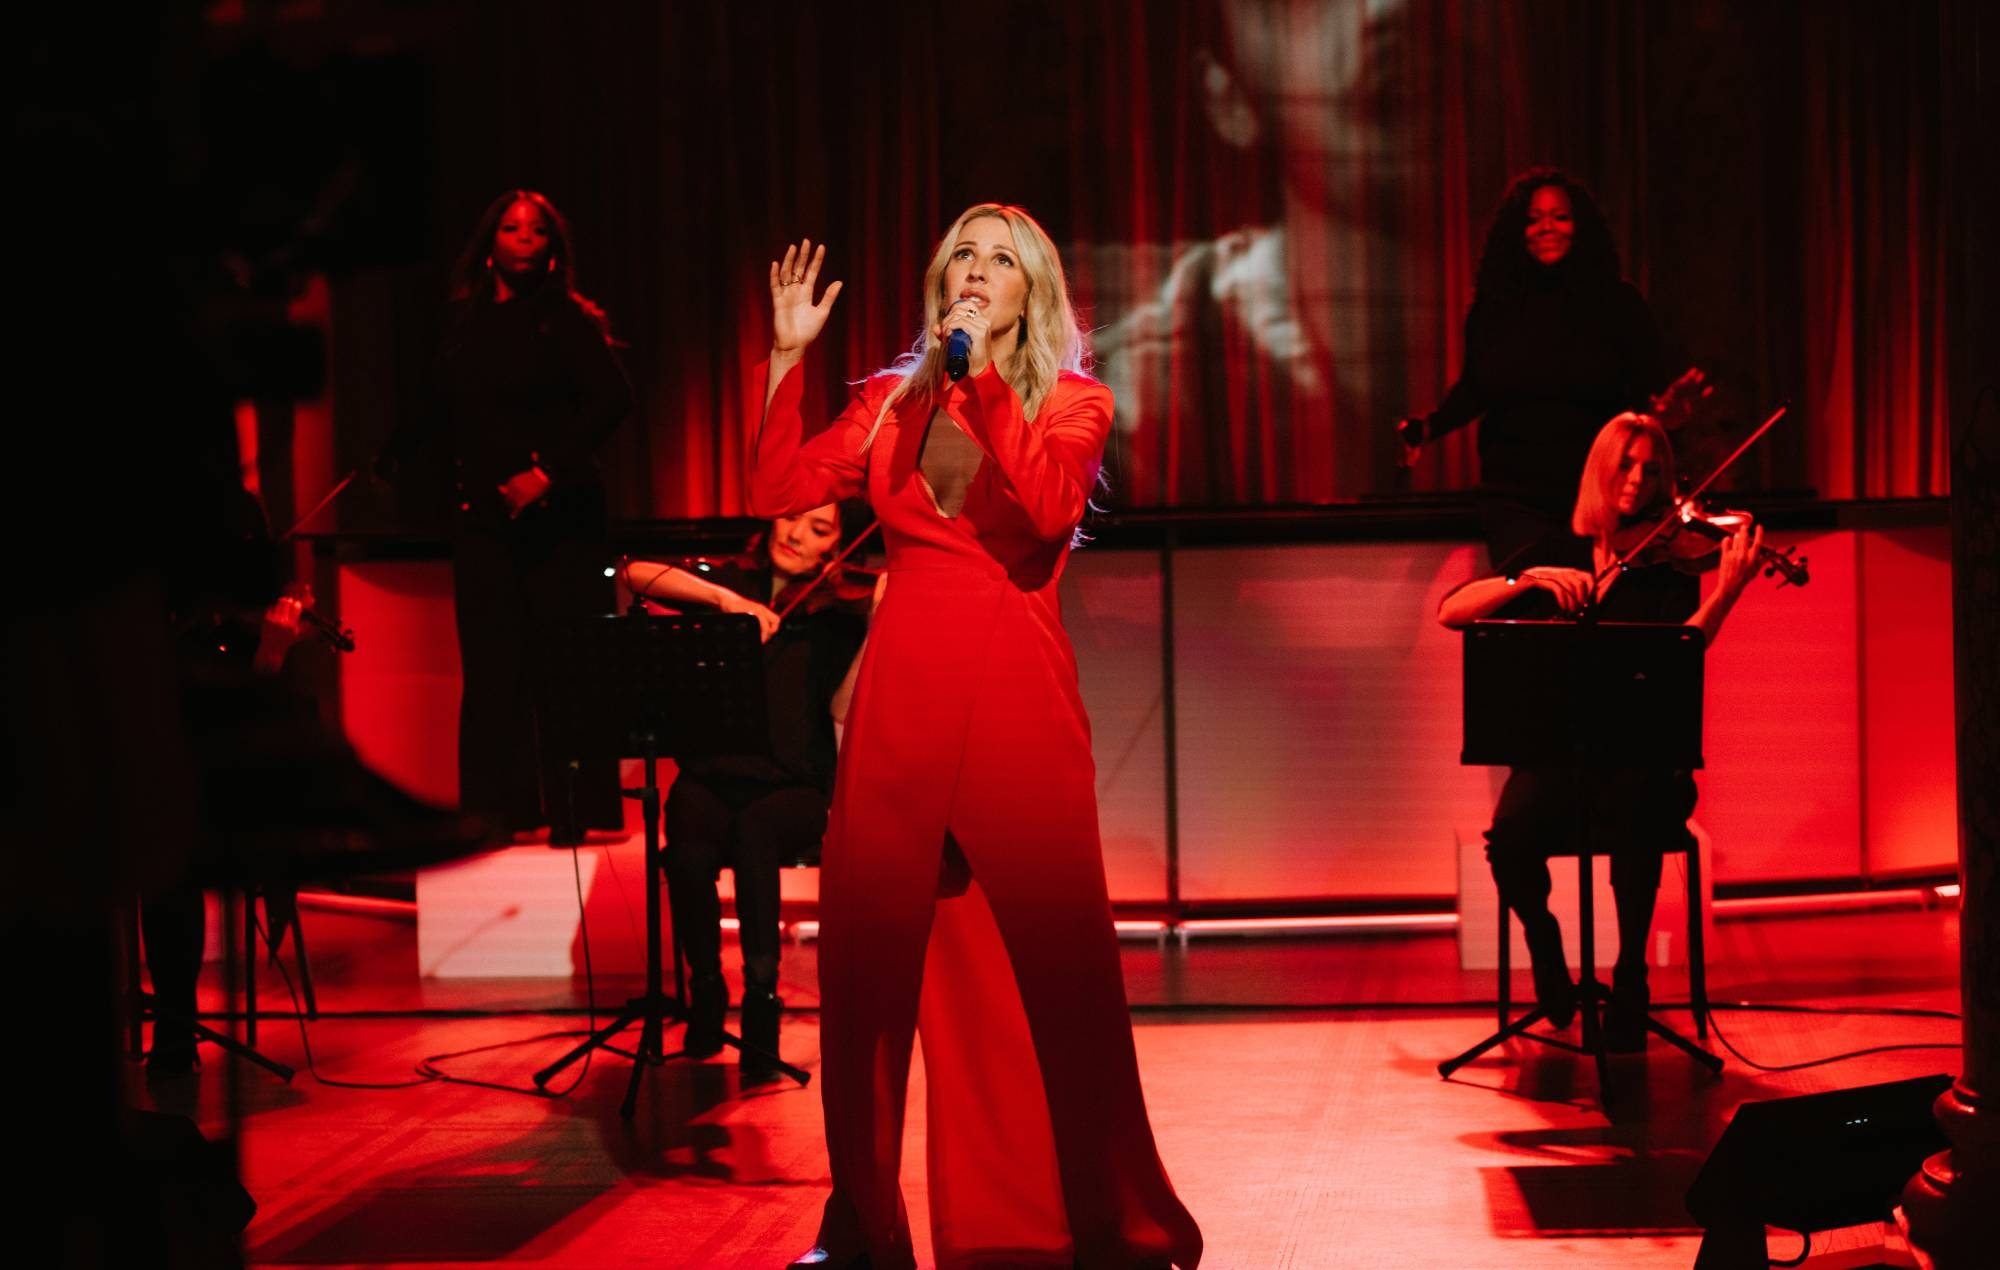 Ellie Goulding reschedules upcoming UK and Ireland tour dates